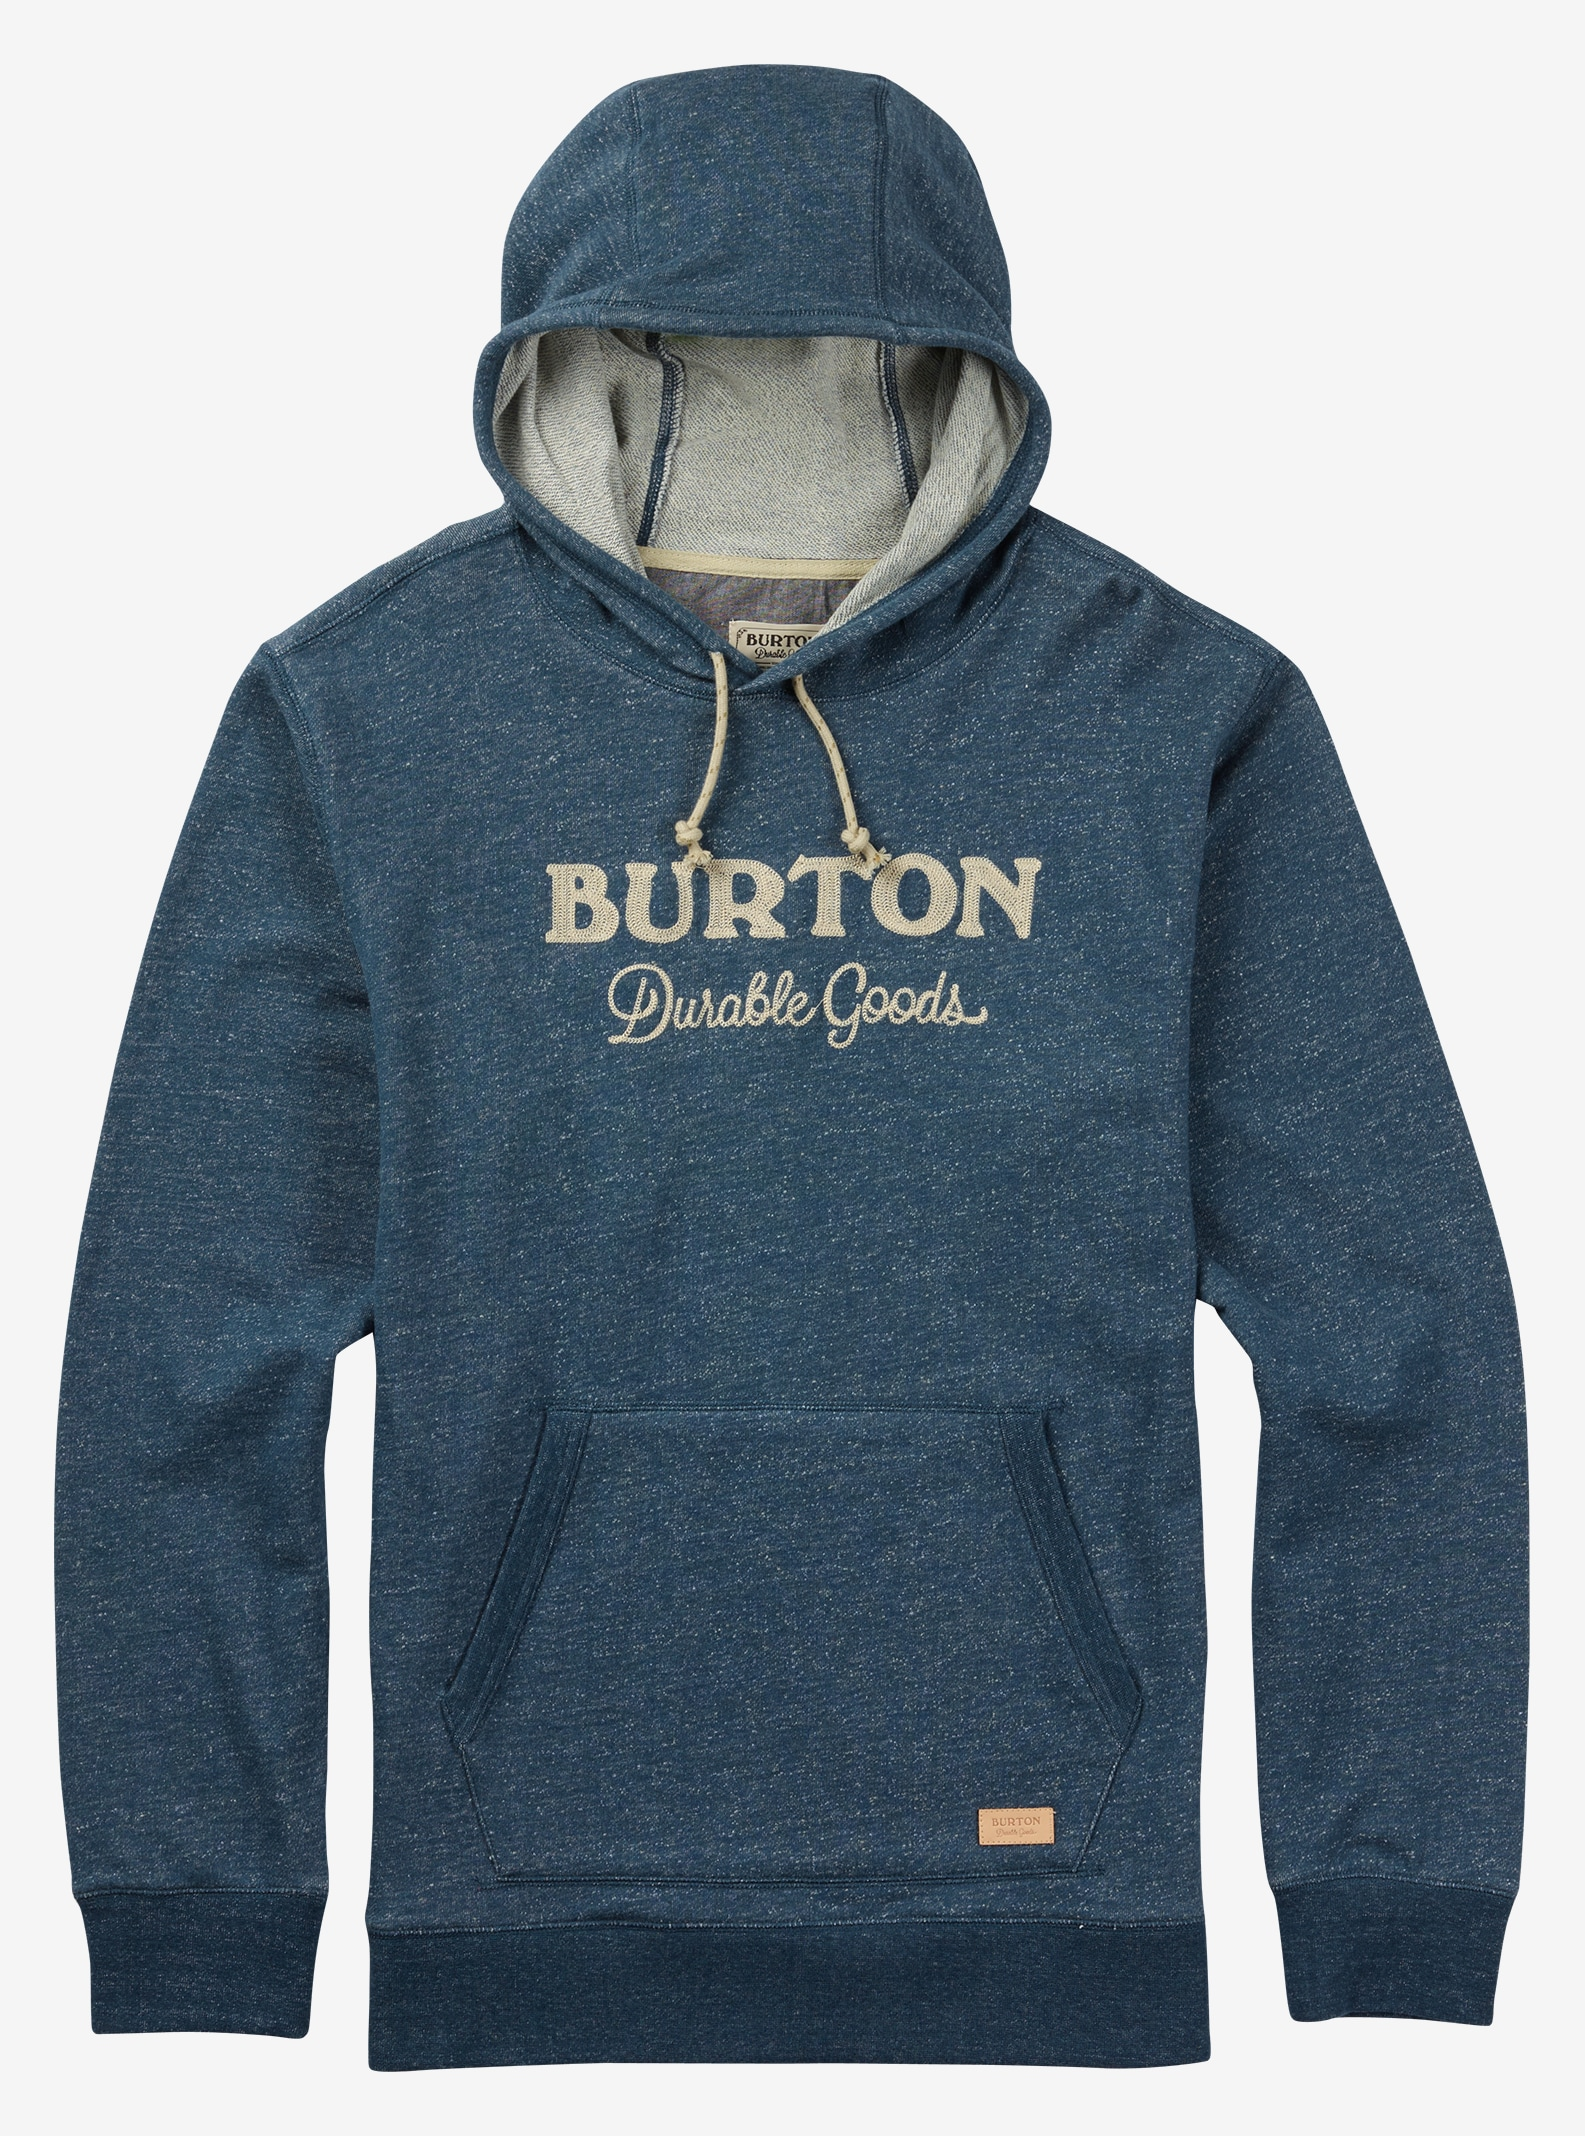 Burton Maynard Pullover shown in Indigo Heather